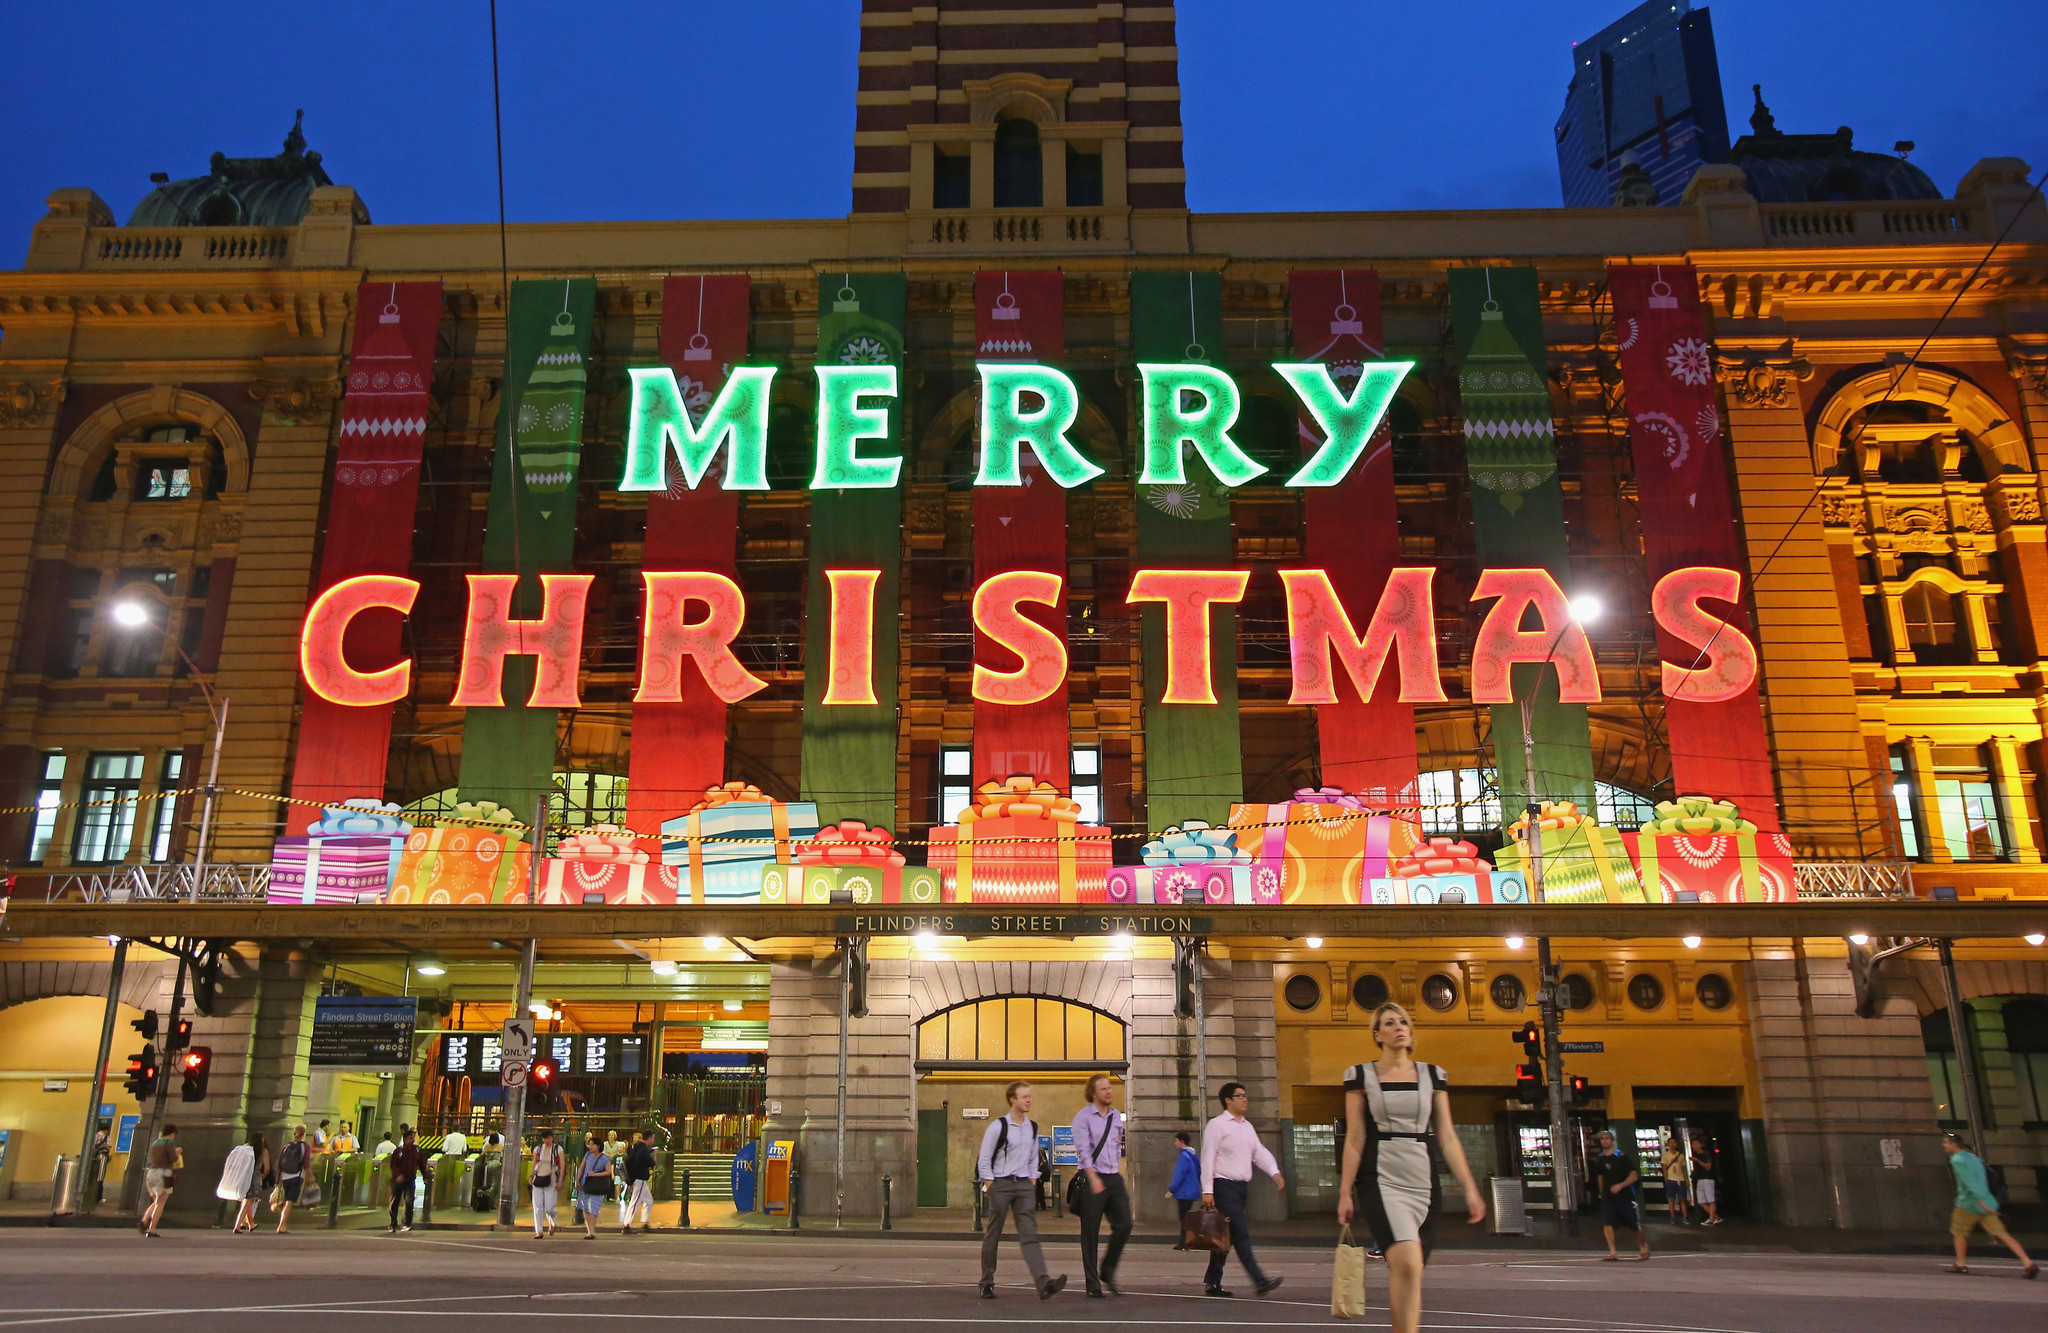 Pictures: Holiday lights from around the globe - Christmas in Melbourne, Australia